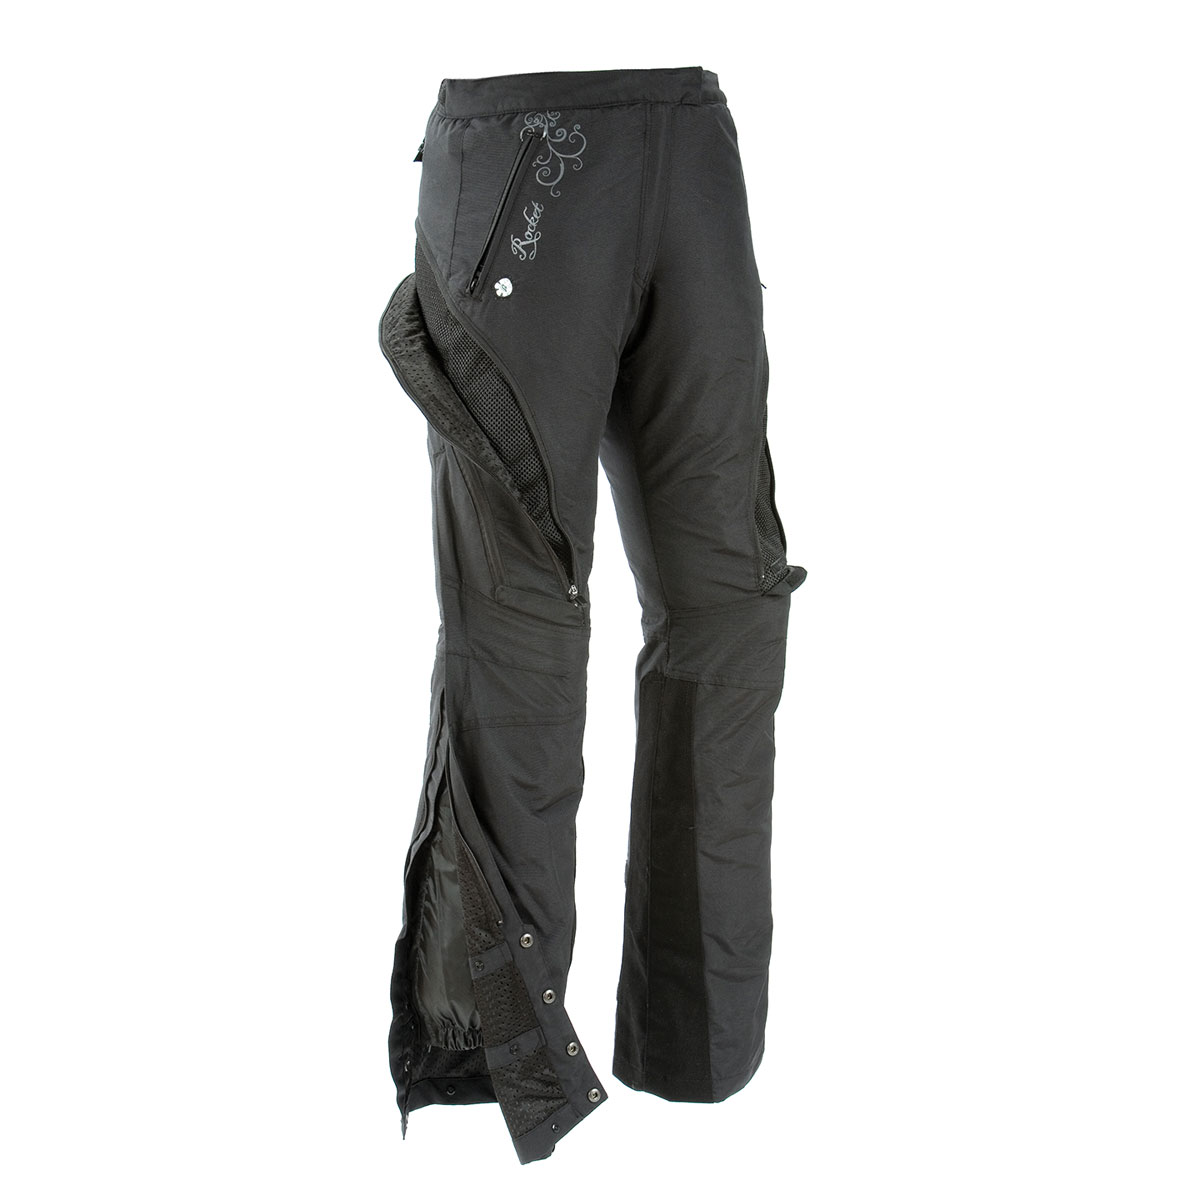 Joe Rocket Women's Alter Ego Black Pants